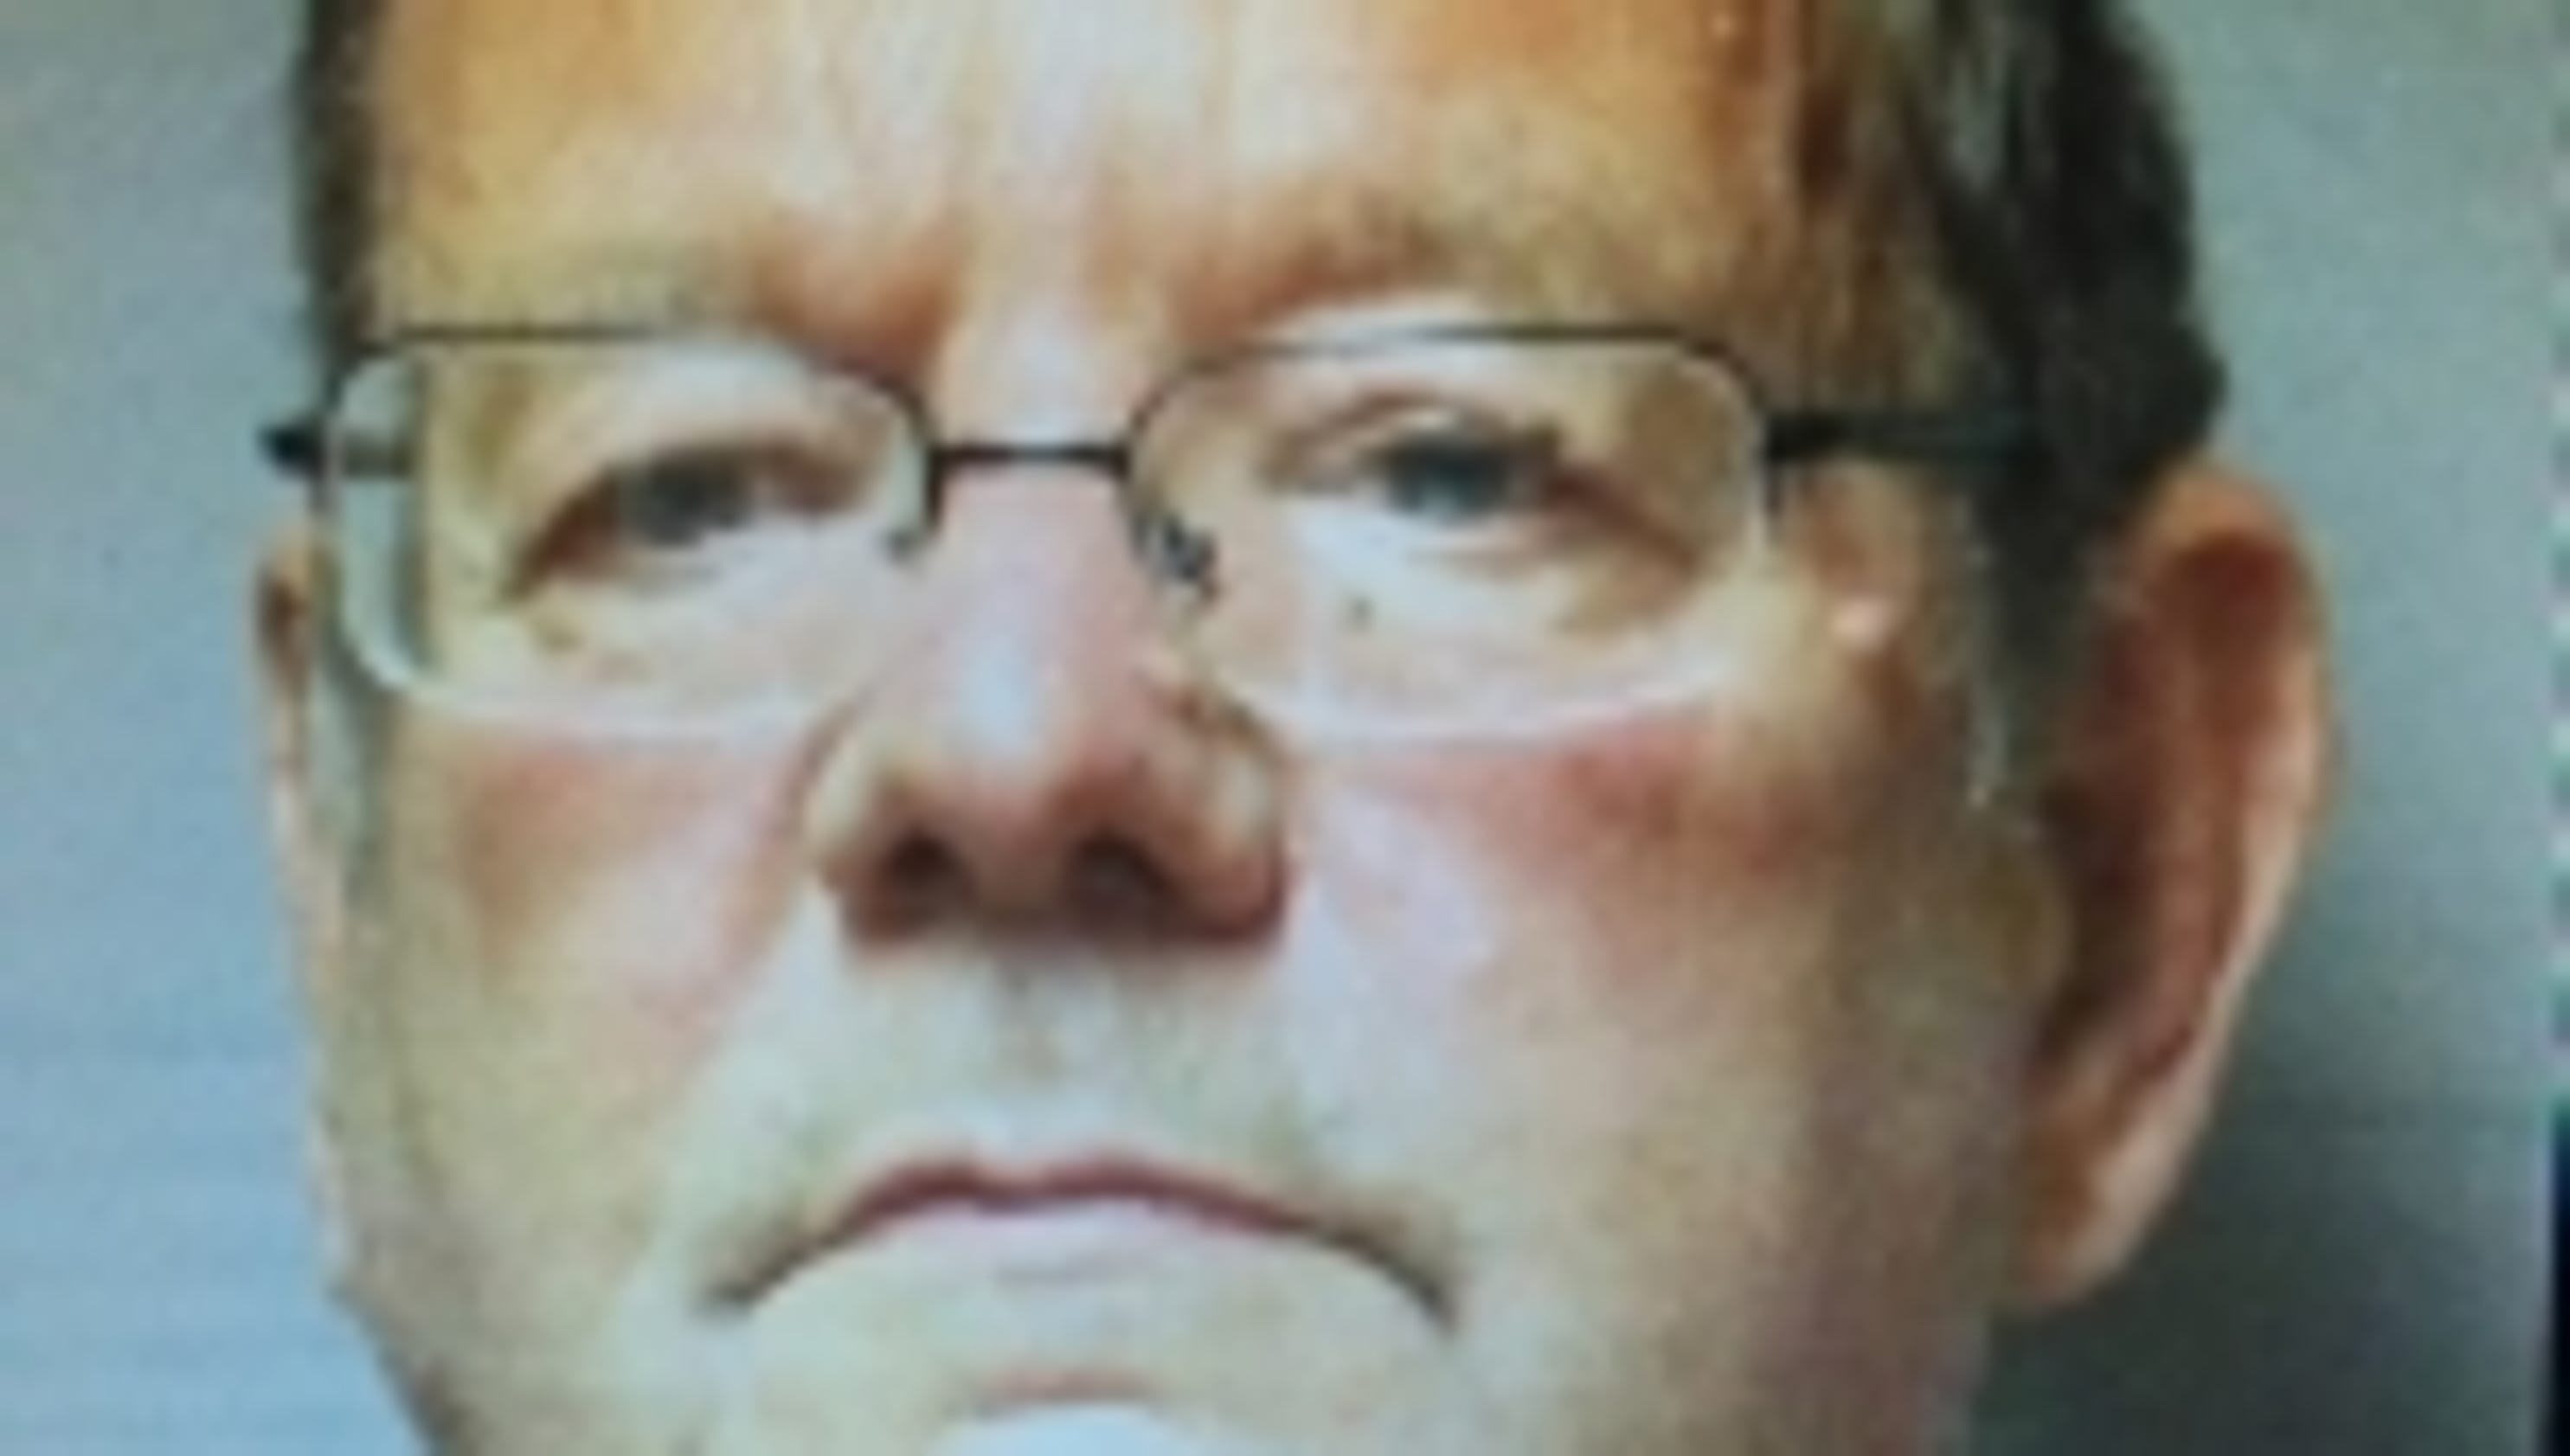 Alleged victims claim sexual abuse in lawsuit against province, church,  priest   CBC News